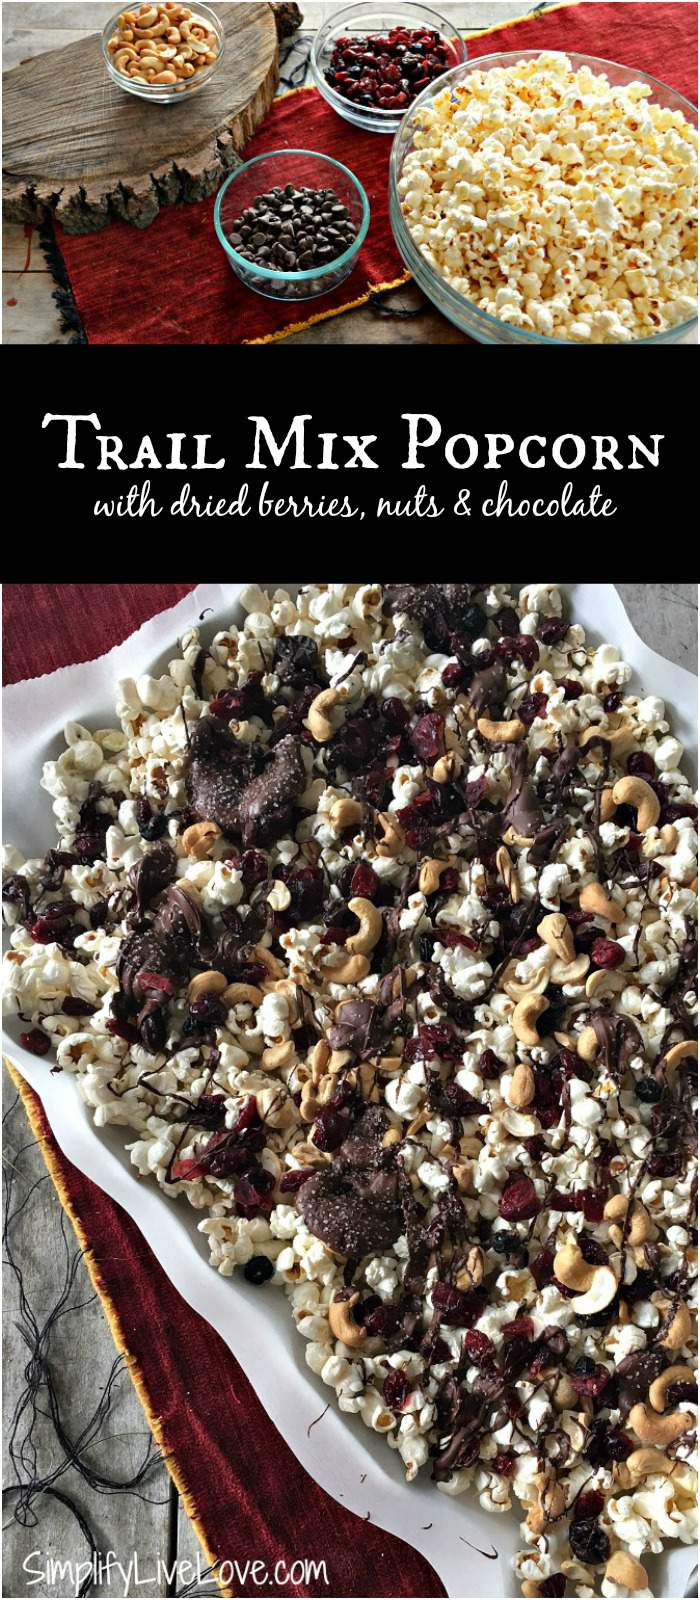 Trail Mix Popcorn with dried fruit, nuts, and chocolate. A quick, healthy, and easy snack your kids will love!